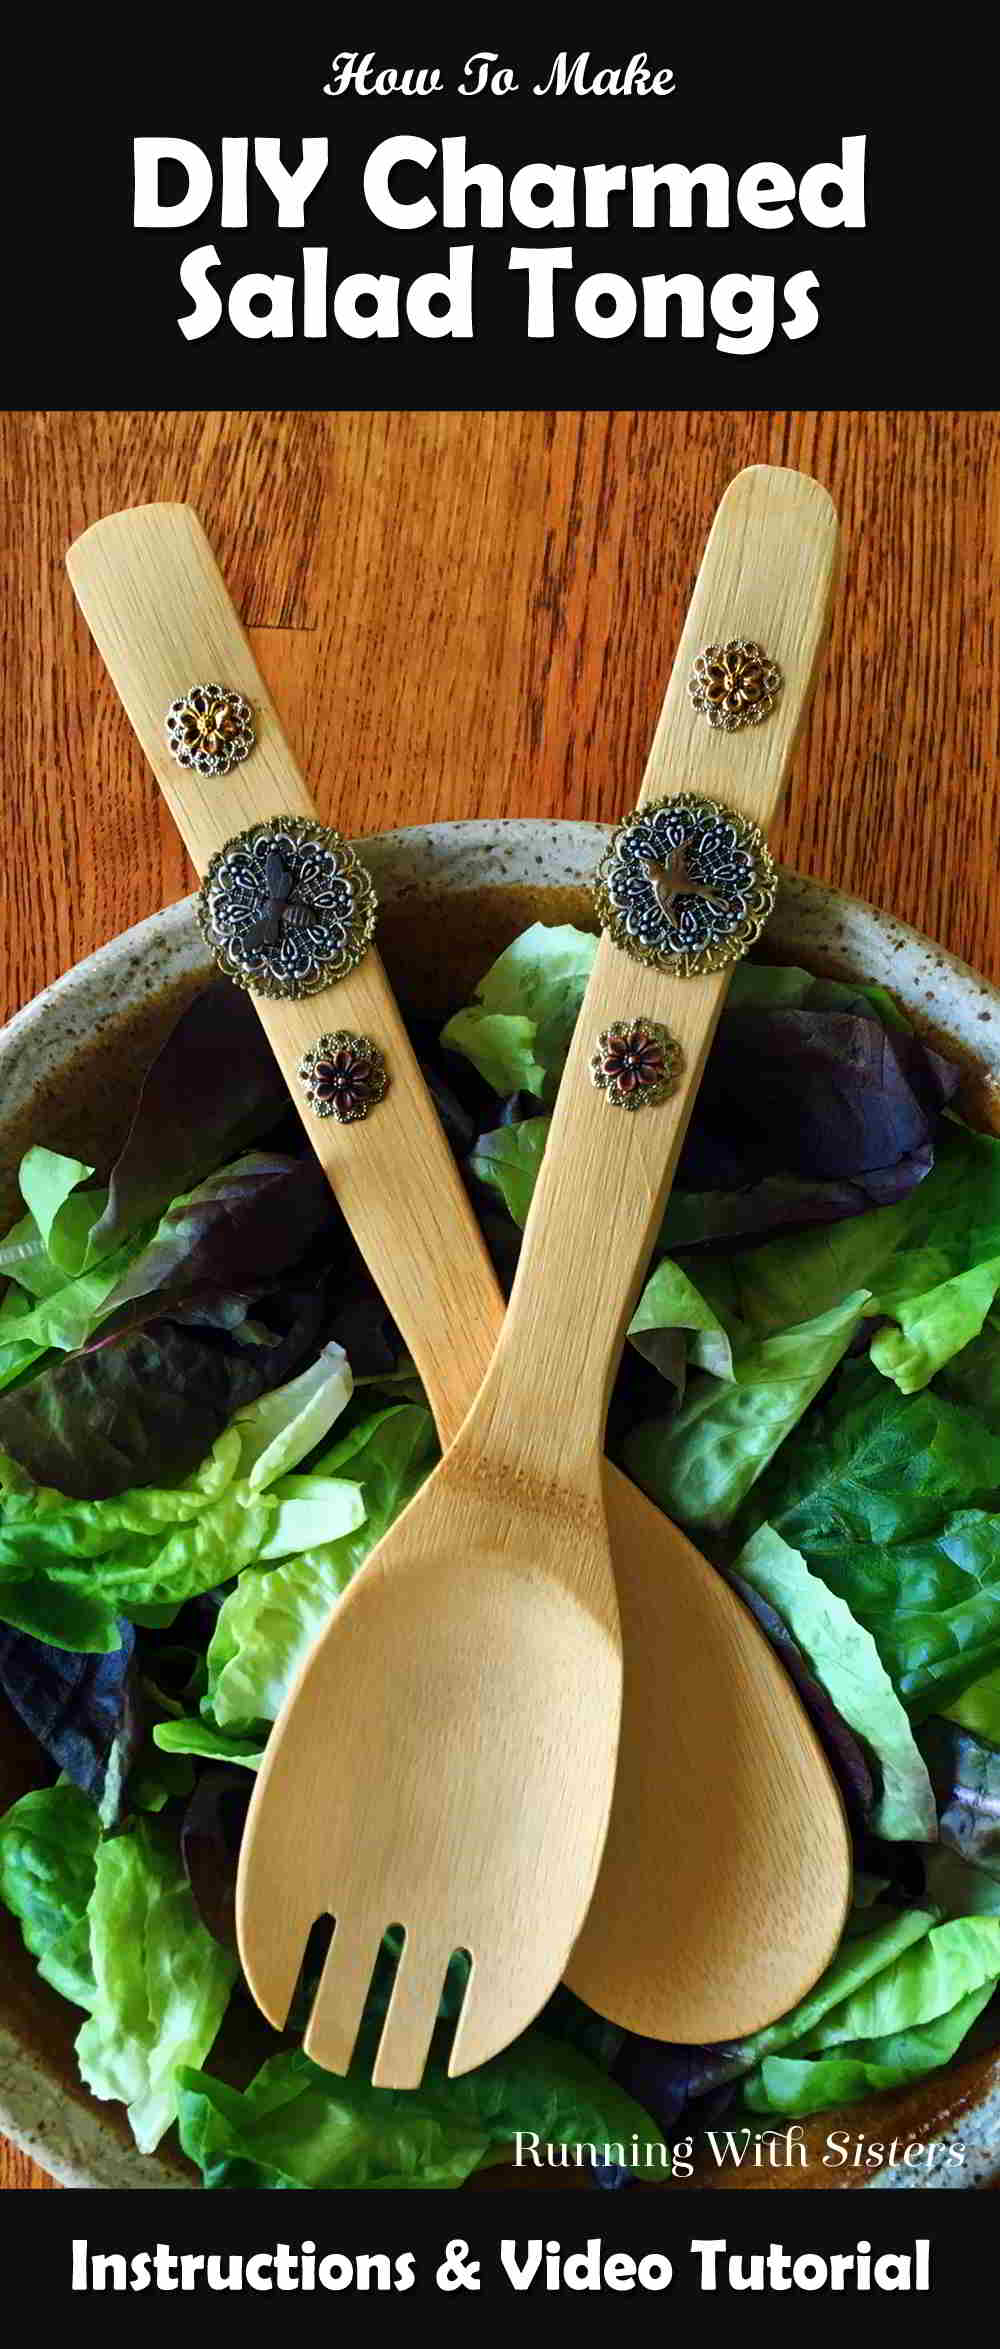 Create a set of Charmed Salad Tongs with pretty metal filigrees and charms. We'll show you every step. This makes for a unique DIY gift!